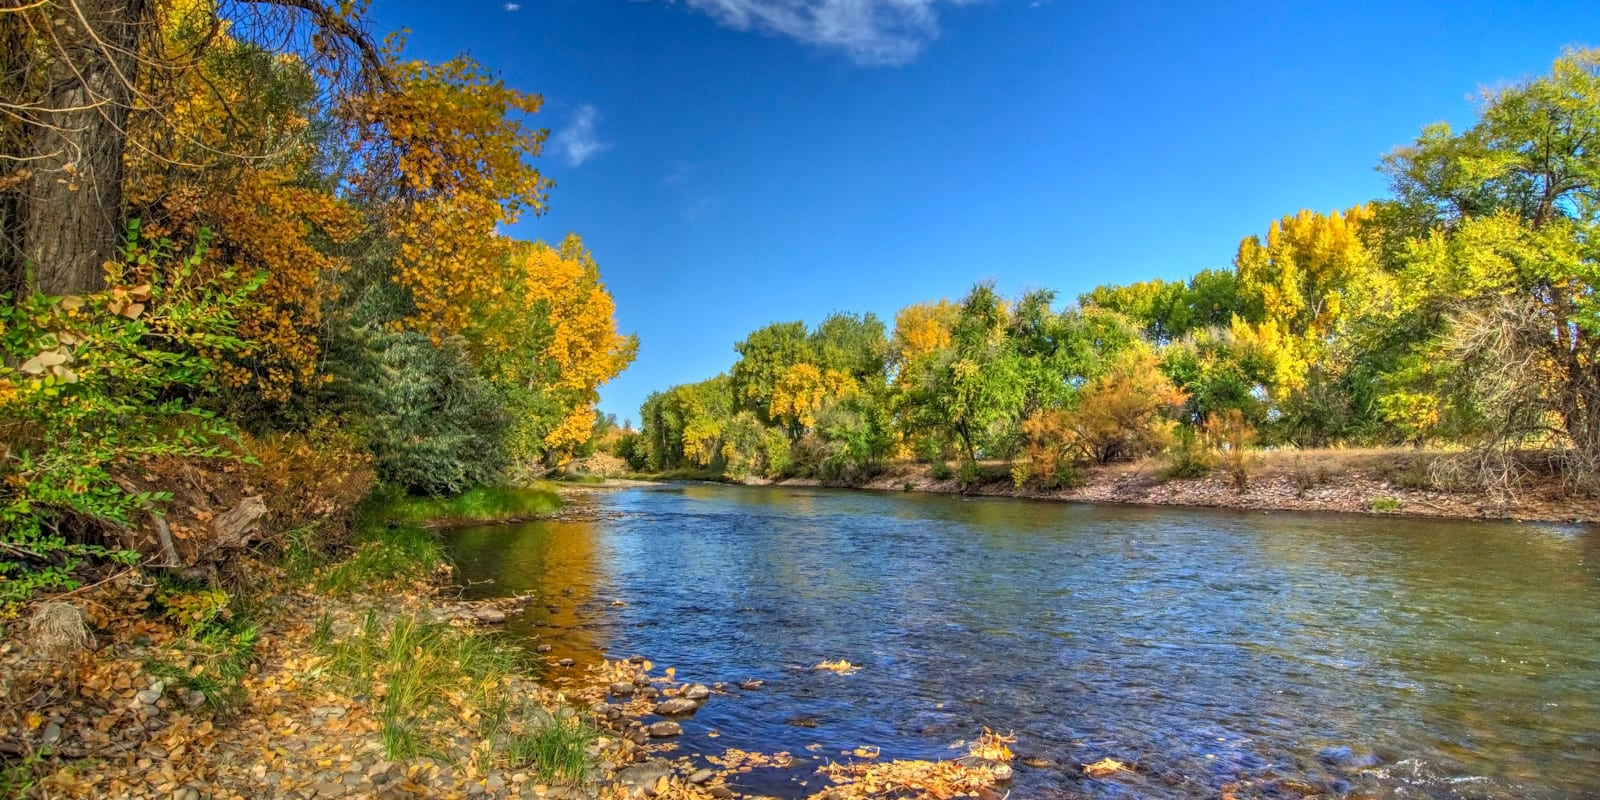 The Arkansas River in Colorado during the fall